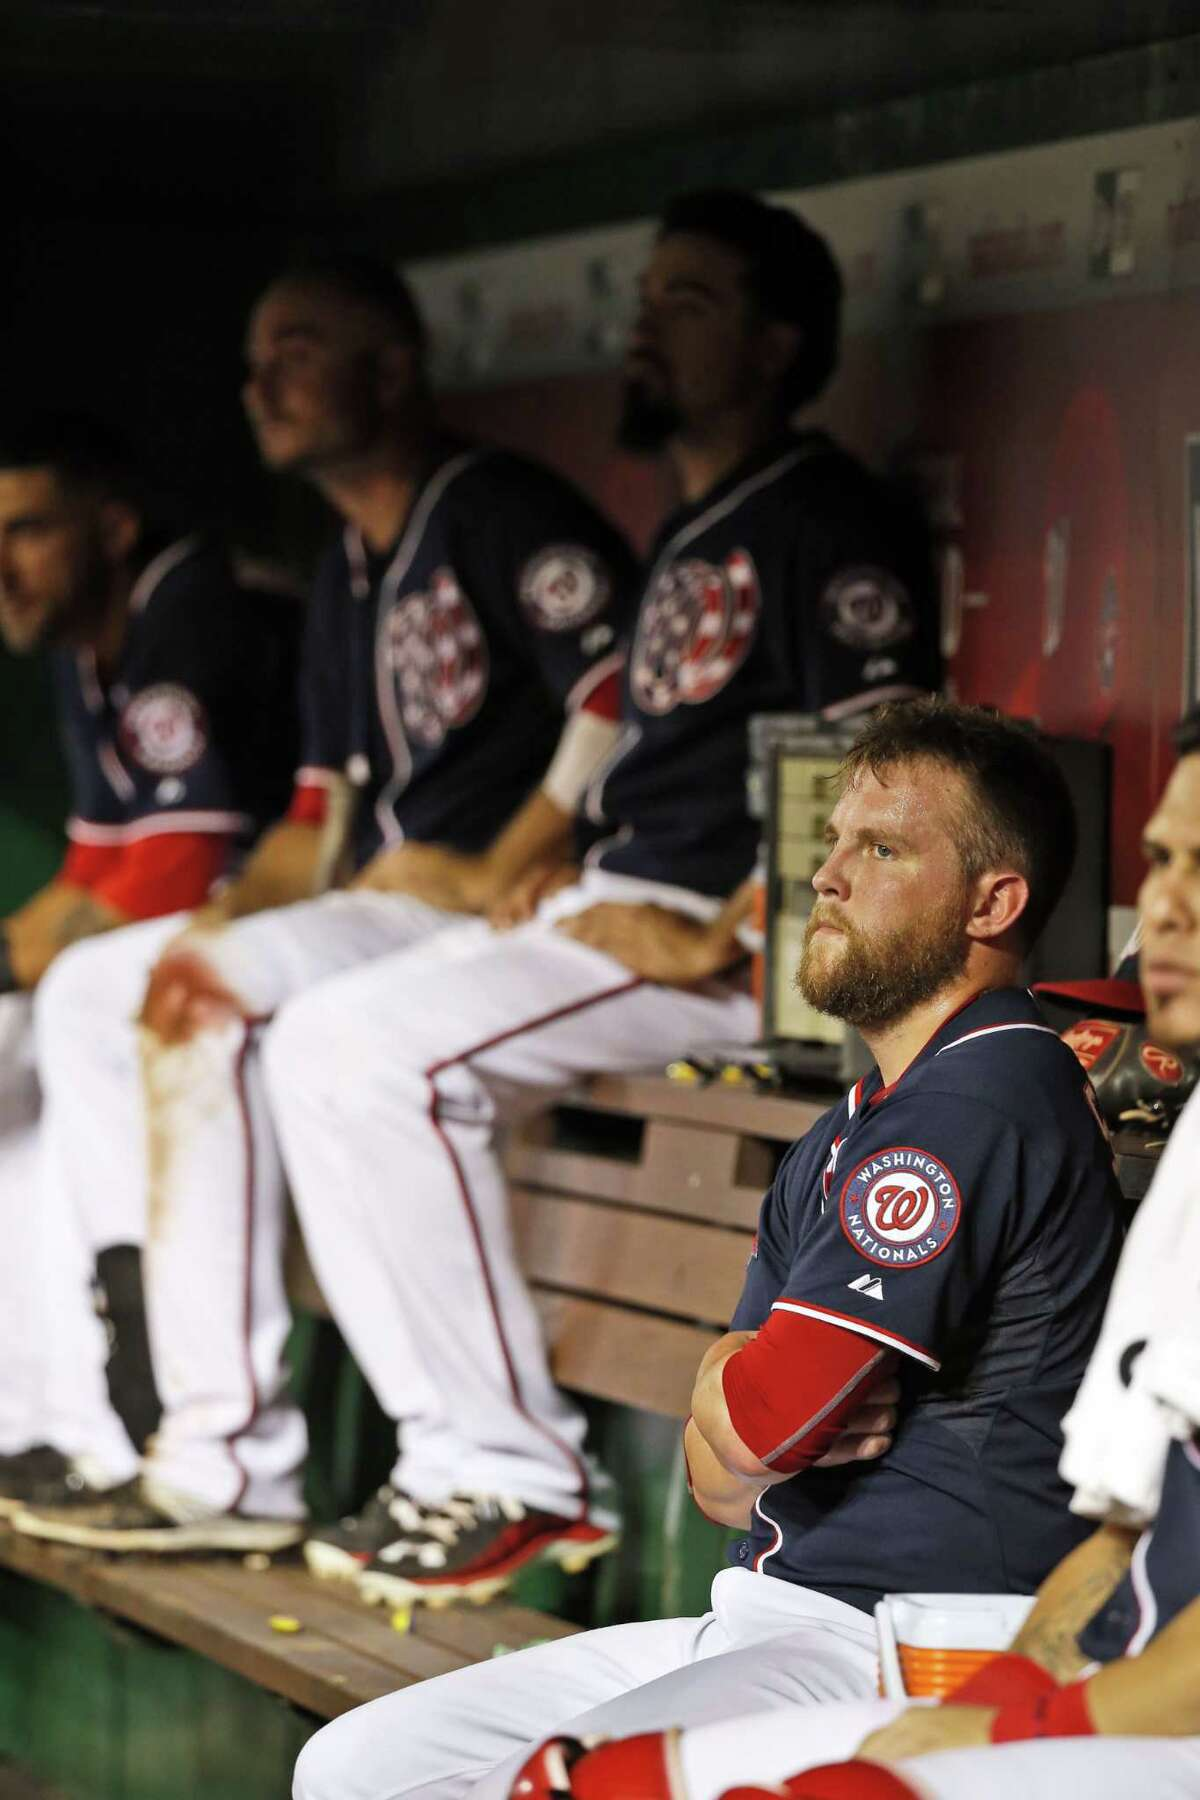 A dismayed Washington Nationals relief pitcher Drew Storen, right, sits in the dugout after giving up Yoenis Cespedes' two-run home run the eighth inning.